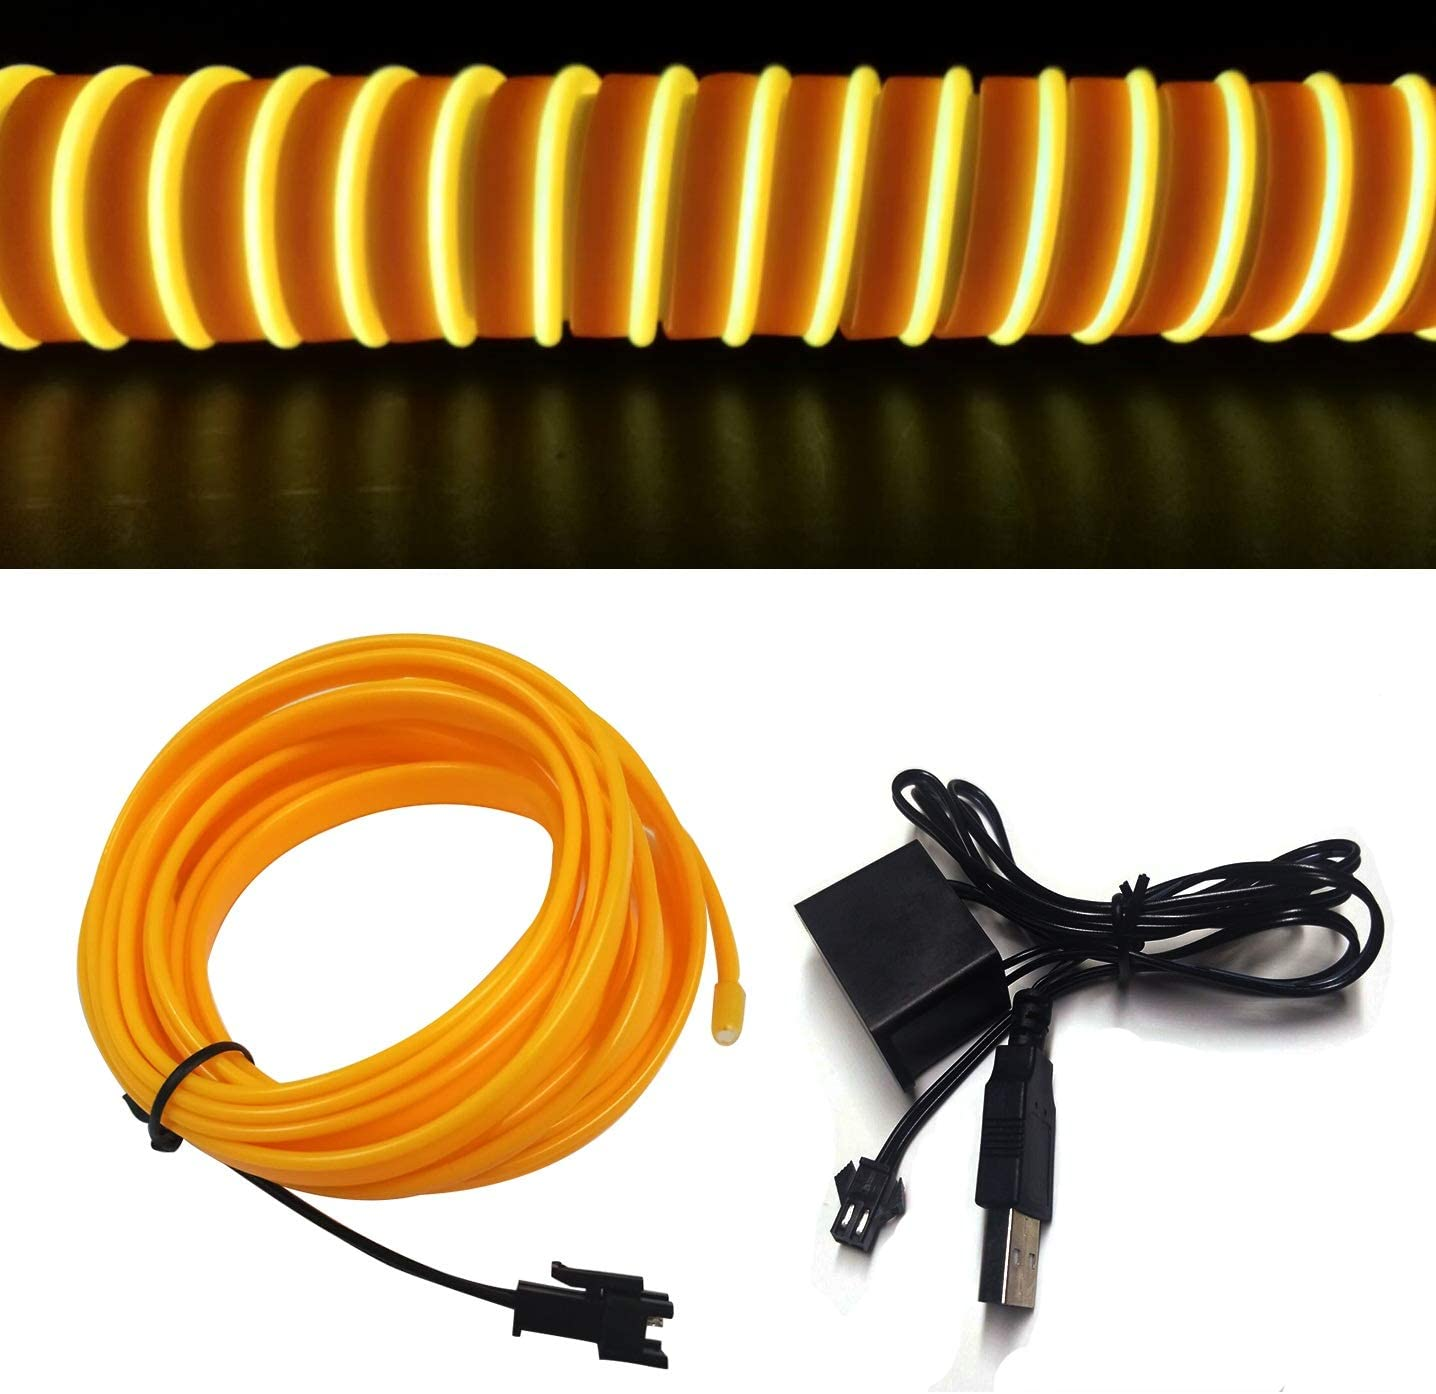 M.best Neon Light El Wire for Automotive Car Interior Decoration with 6mm Sewing Edge (5M/15FT, Yellow)